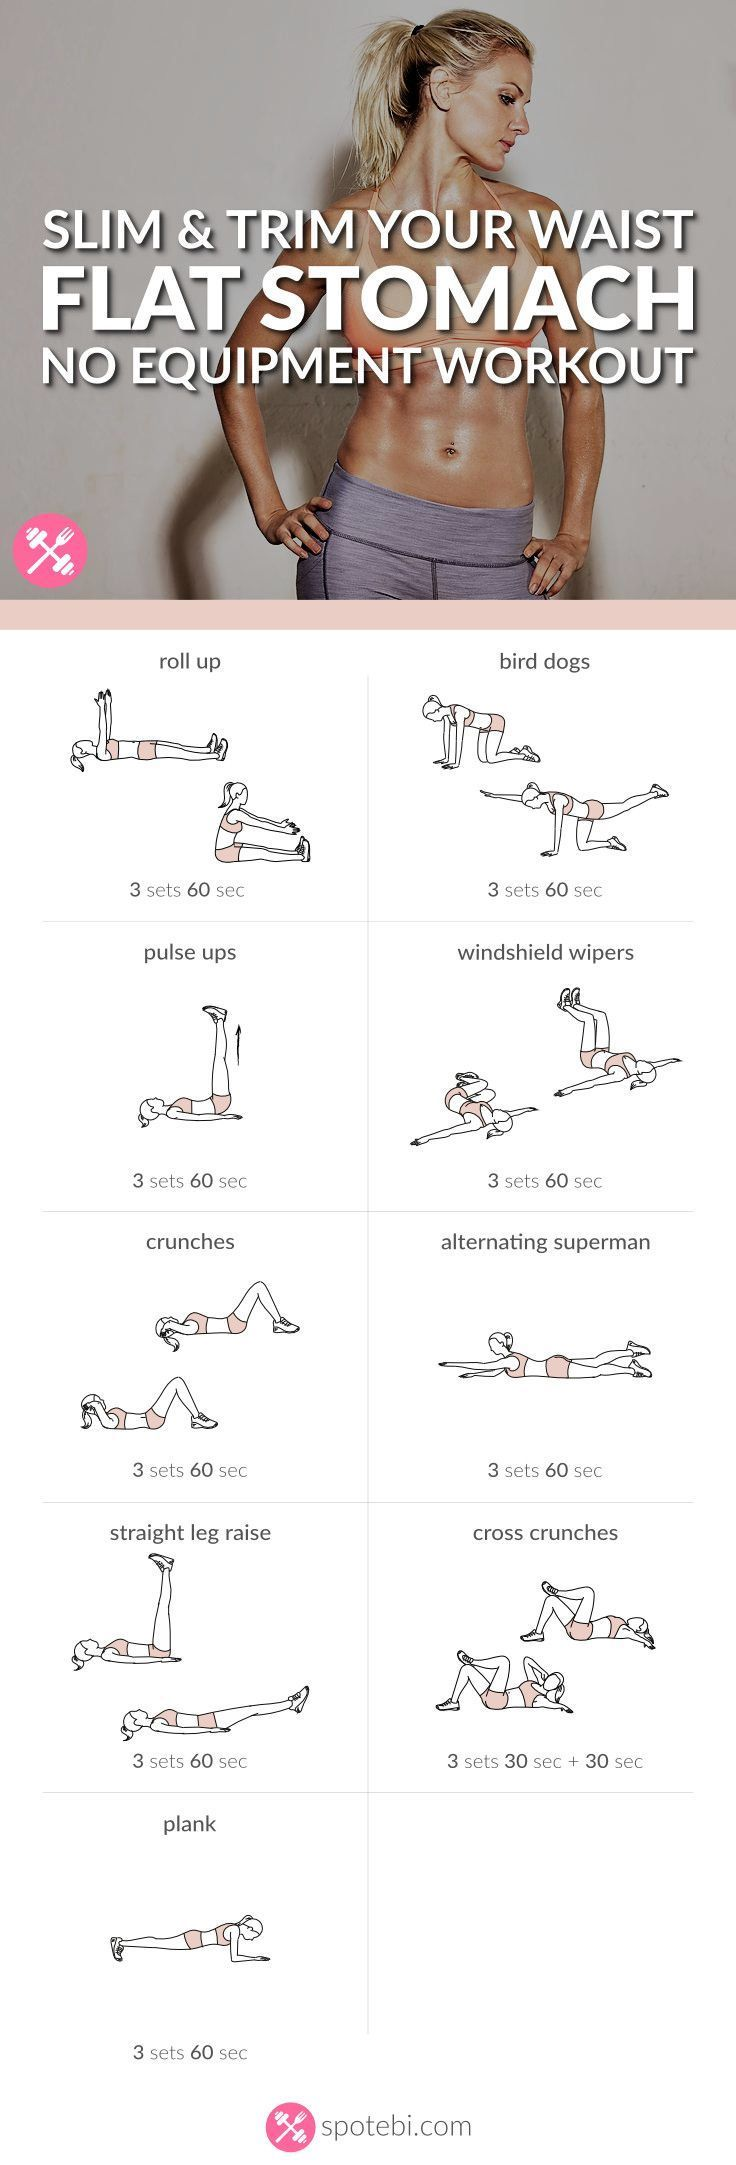 awesome Want to easily whip your tummy into shape? Try this at home flat stomach workout...